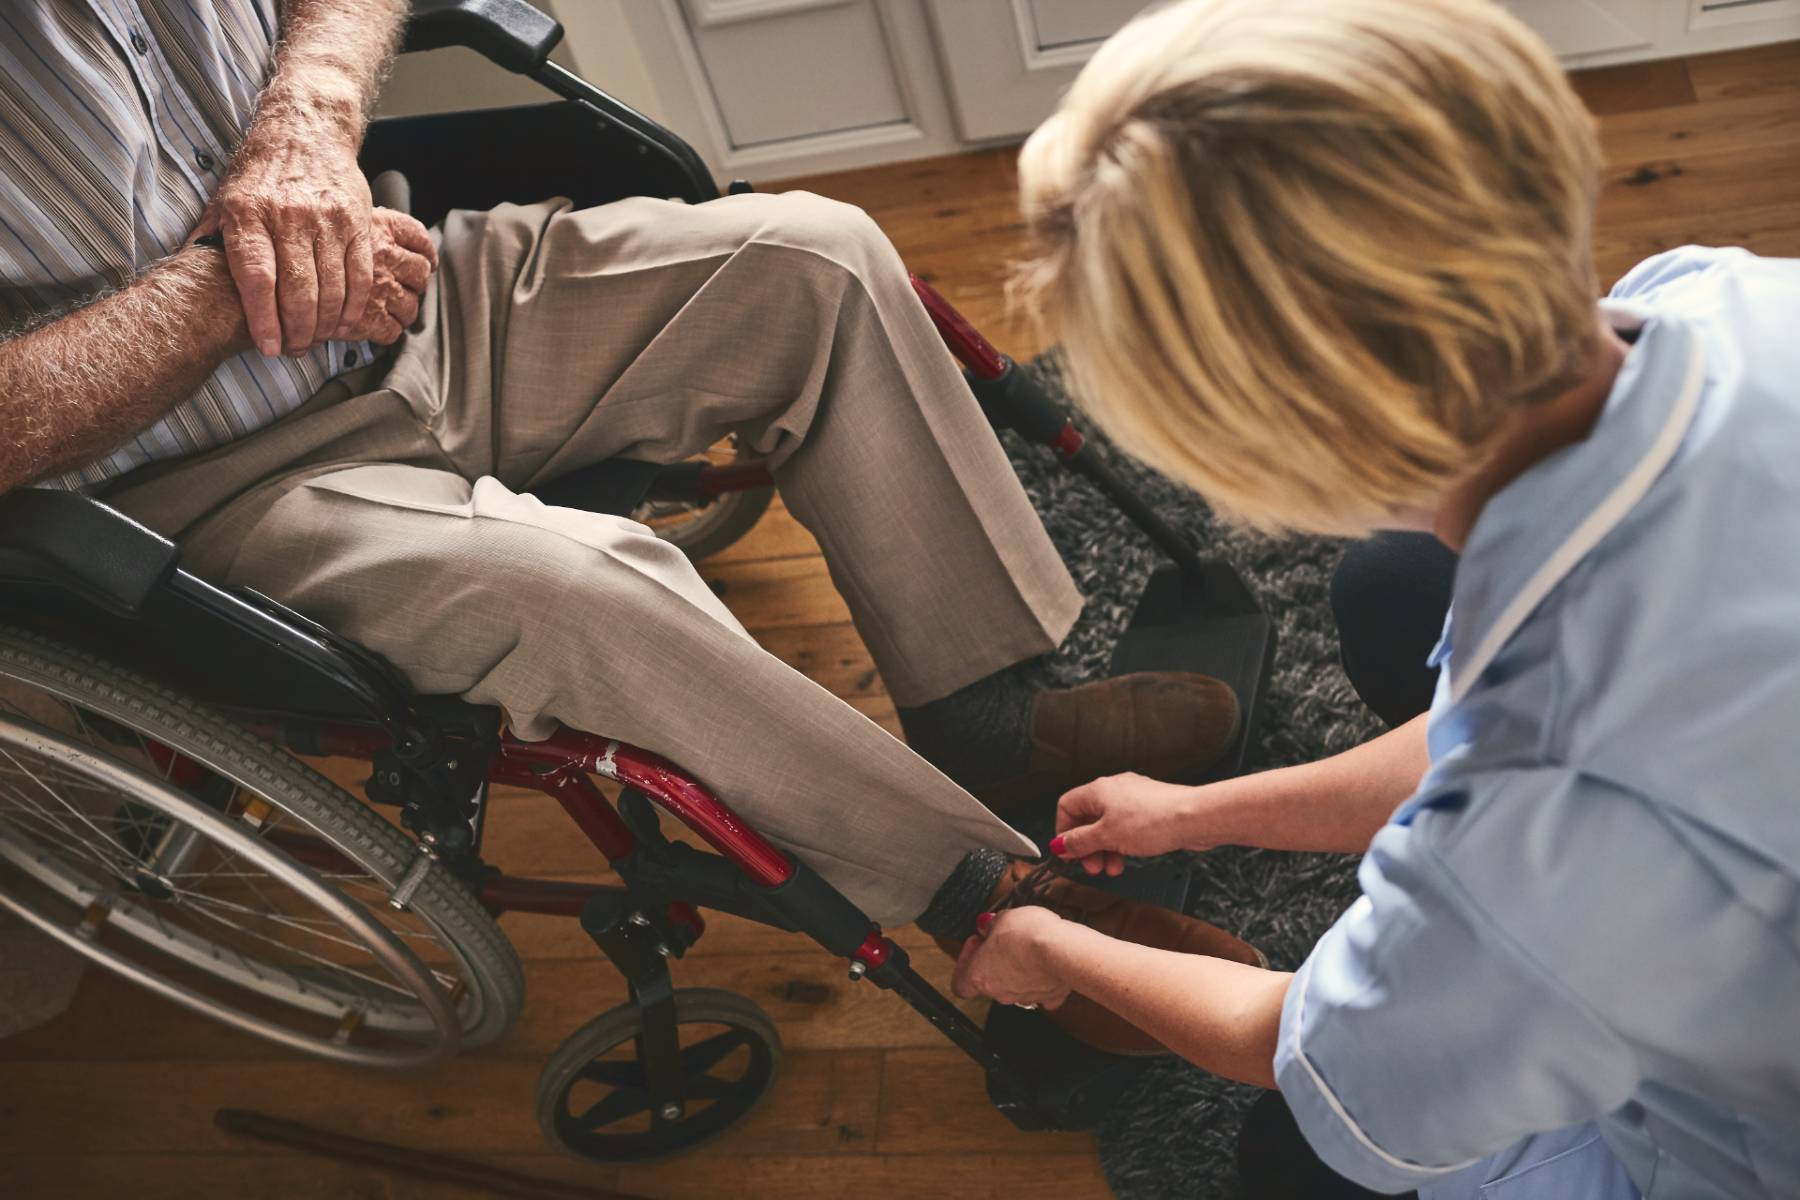 A women bends over to tie the shoe of a senior man in a wheel chair